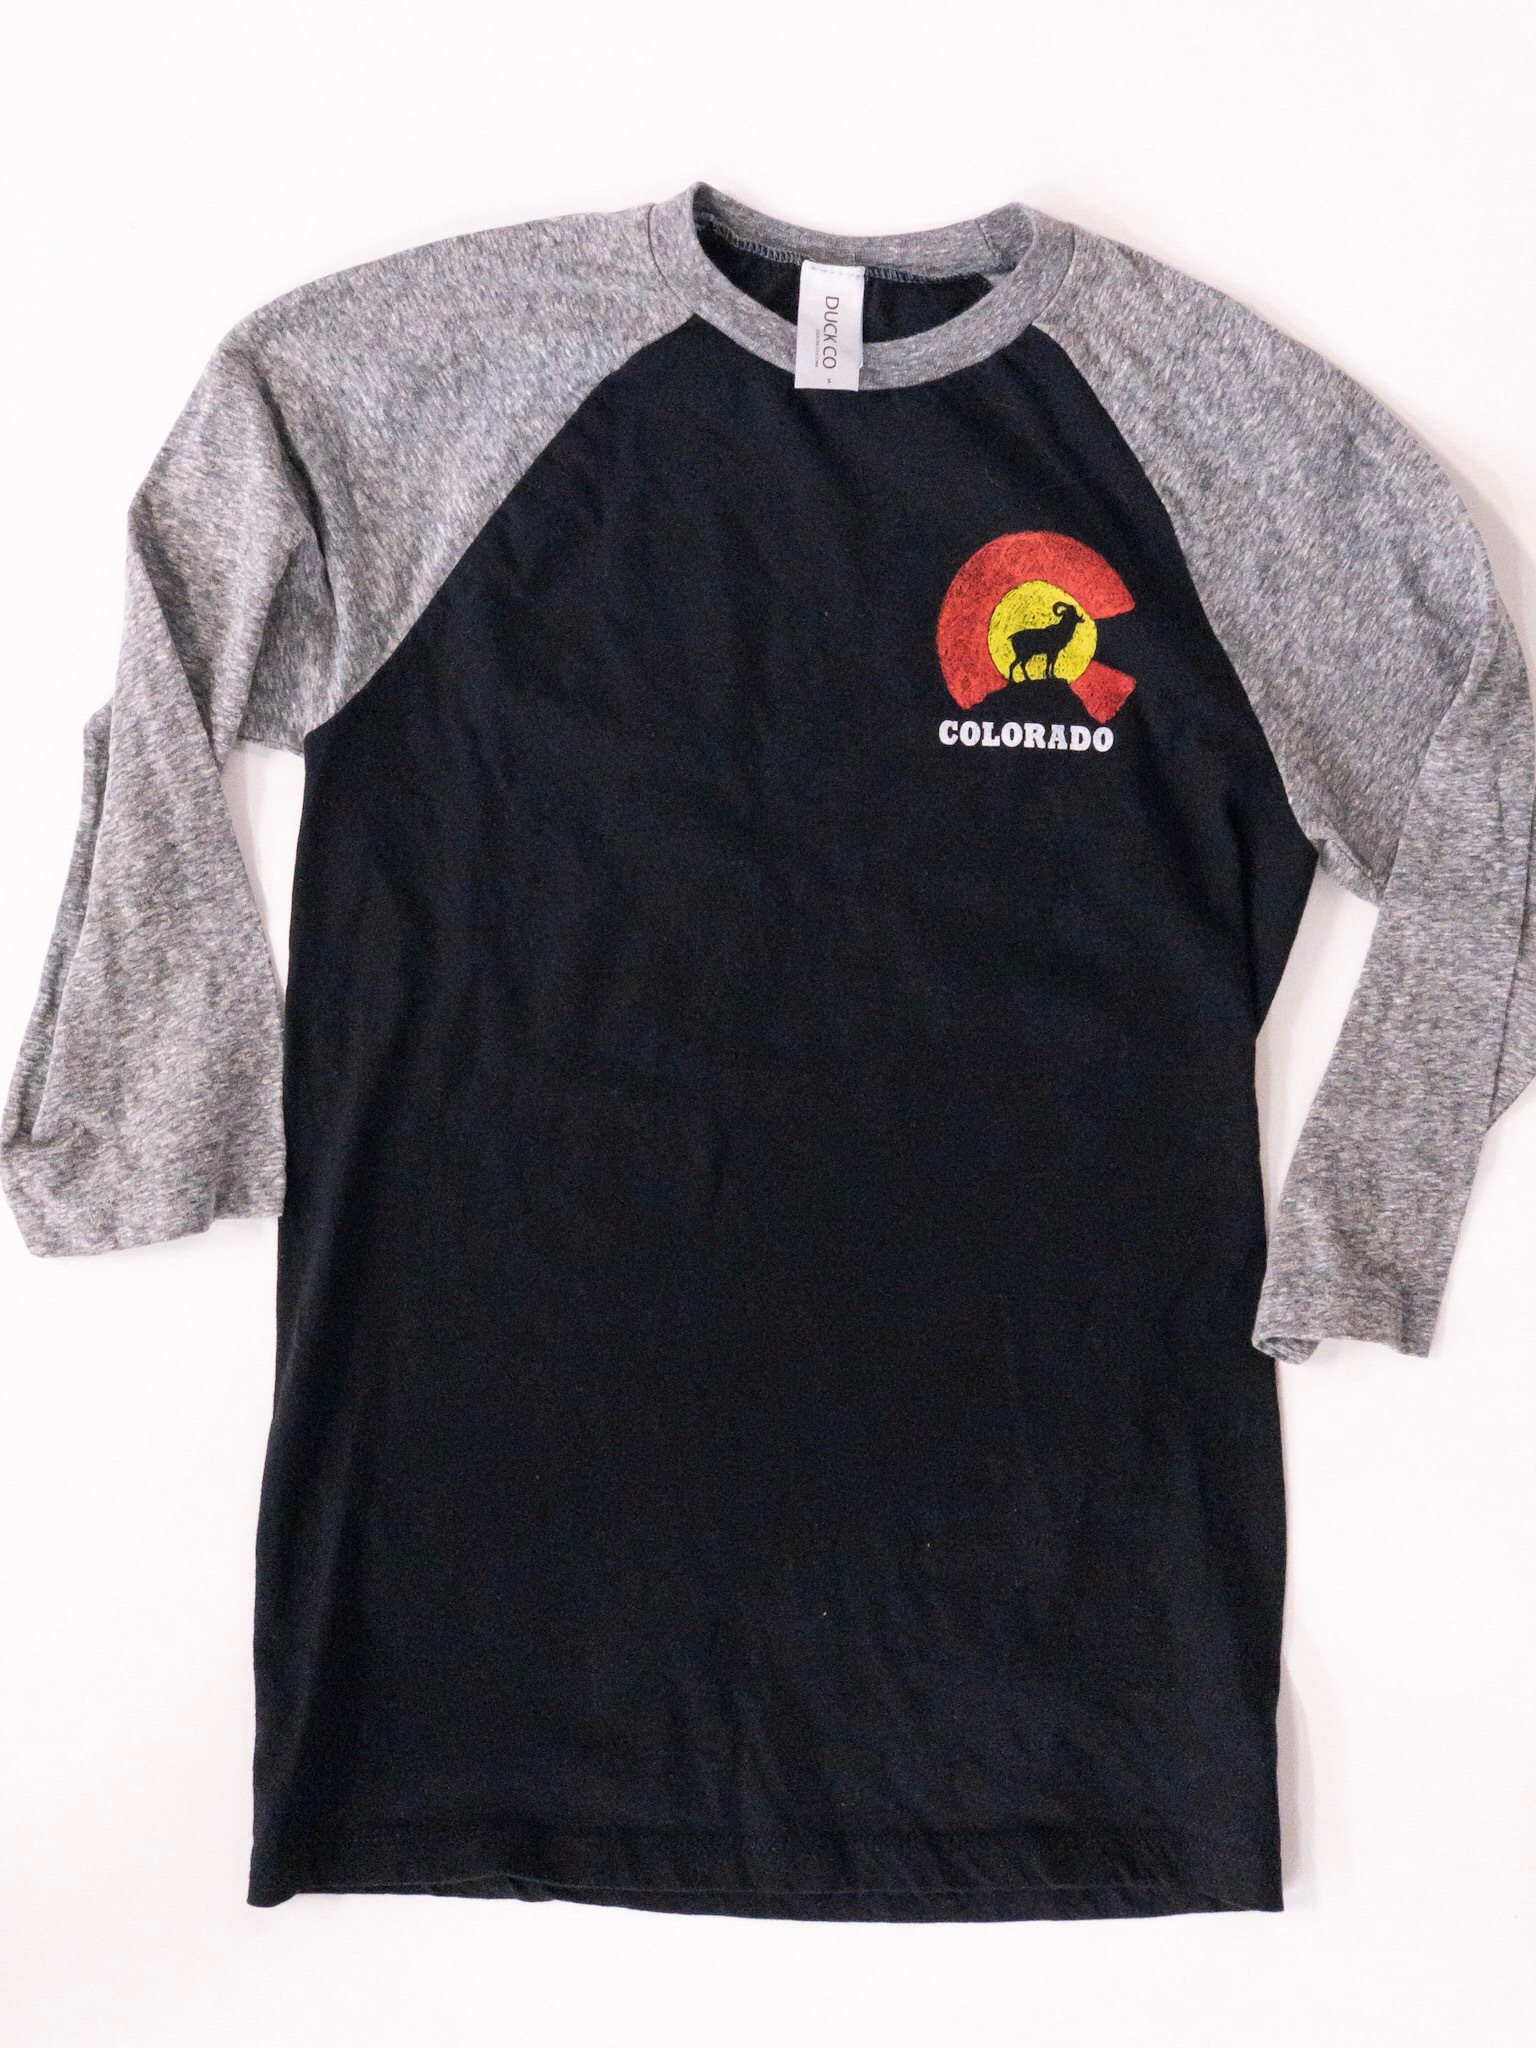 Colorado black and grey Raglan 00021